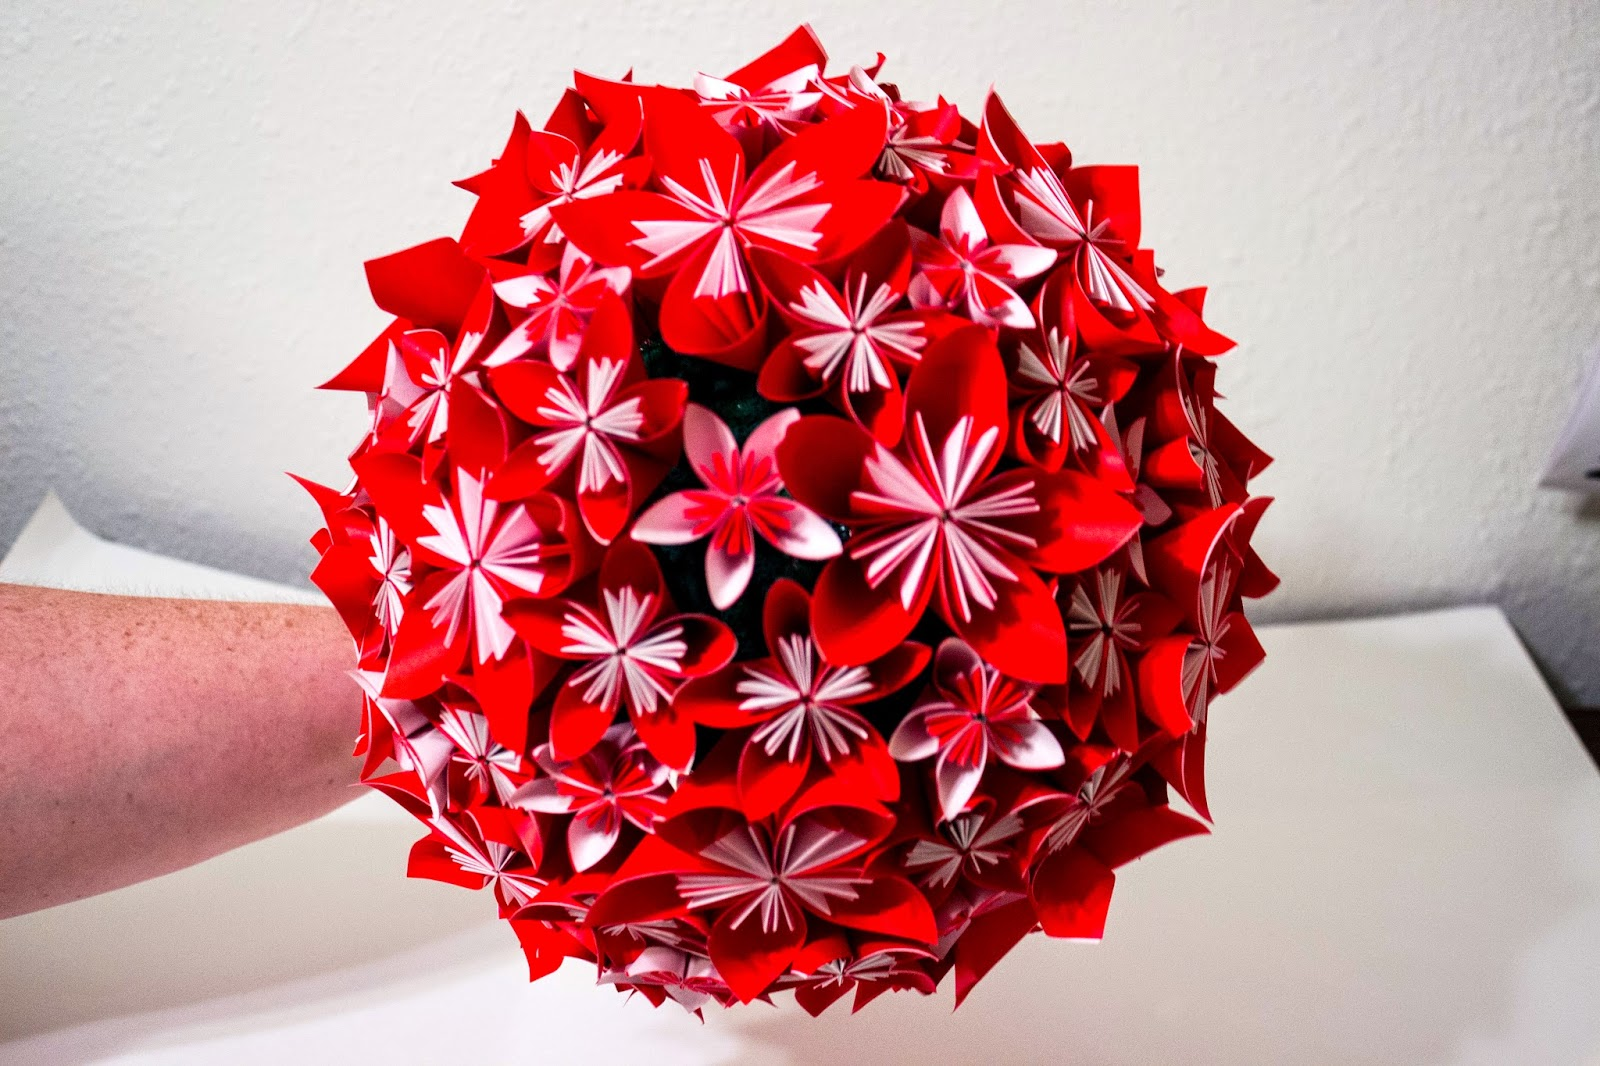 Will fold for paper wedding bouquets each bridesmaid bouquet is made with 15 flowers each flower has 5 petals each petal is made with one sheet of square origami paper mightylinksfo